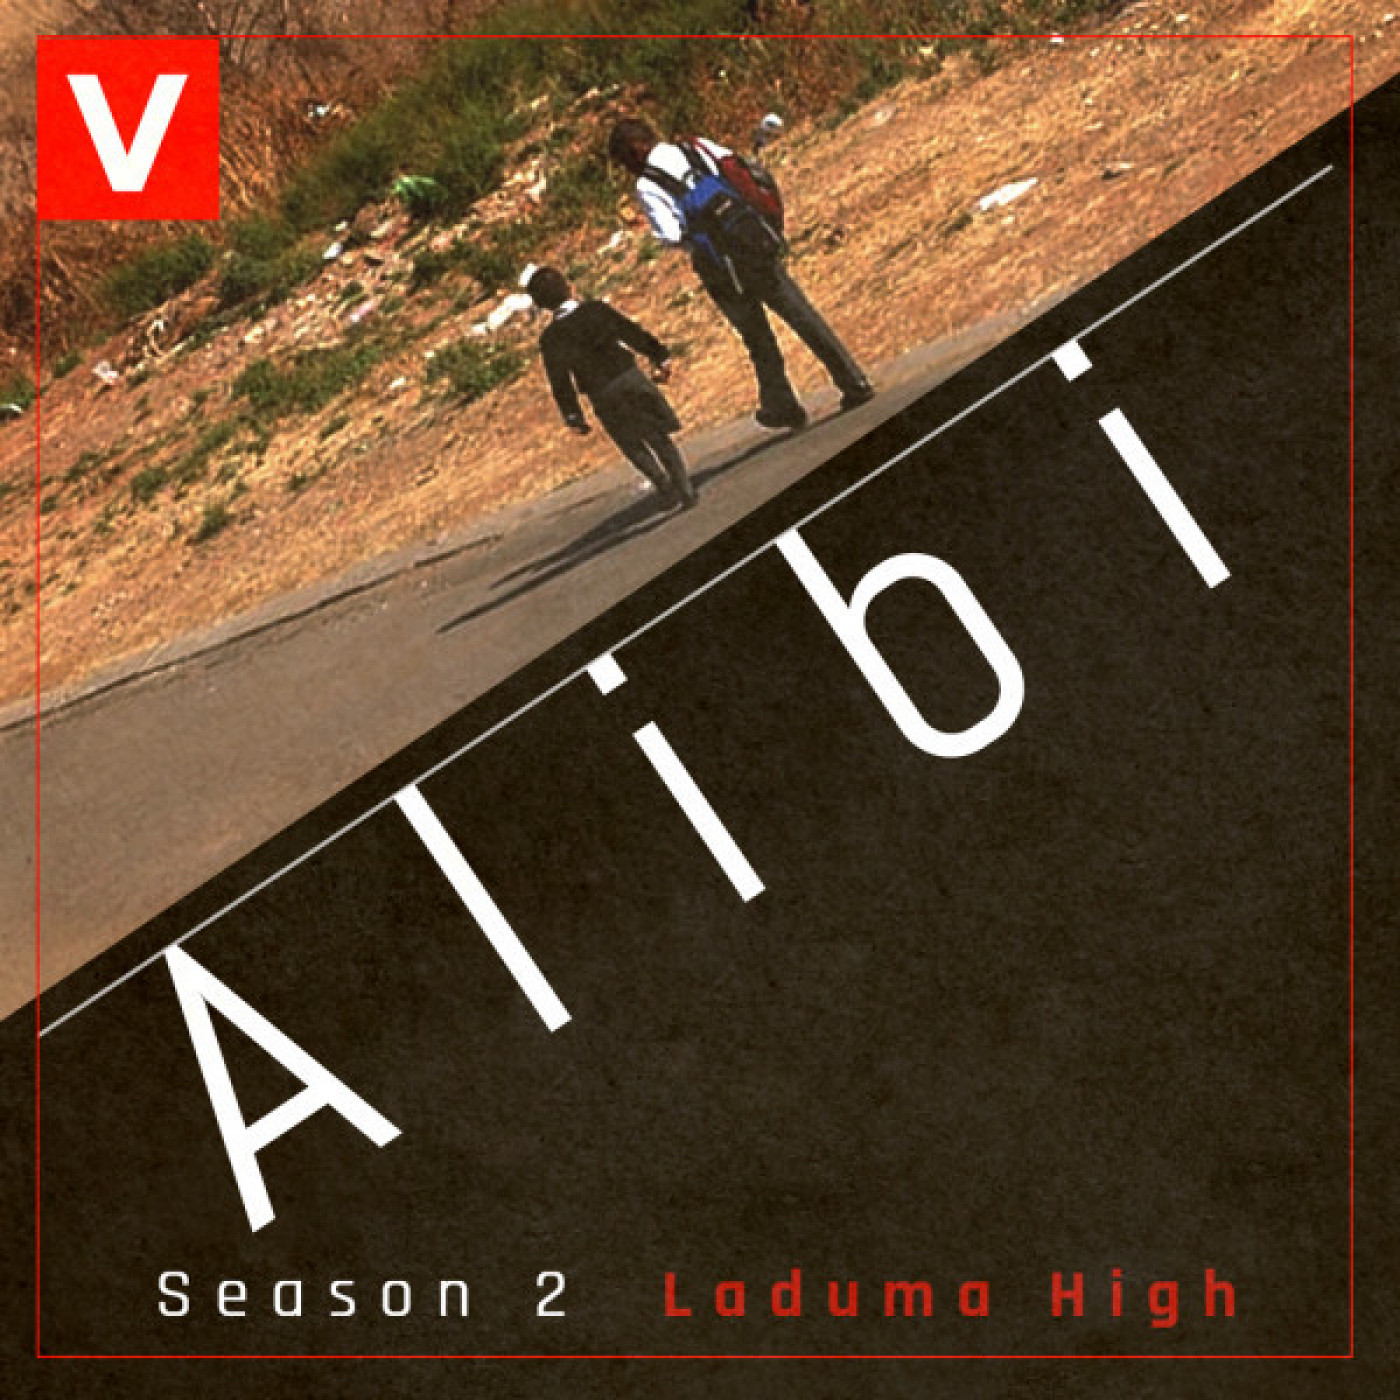 S2: Laduma High E4: A Cry For Help